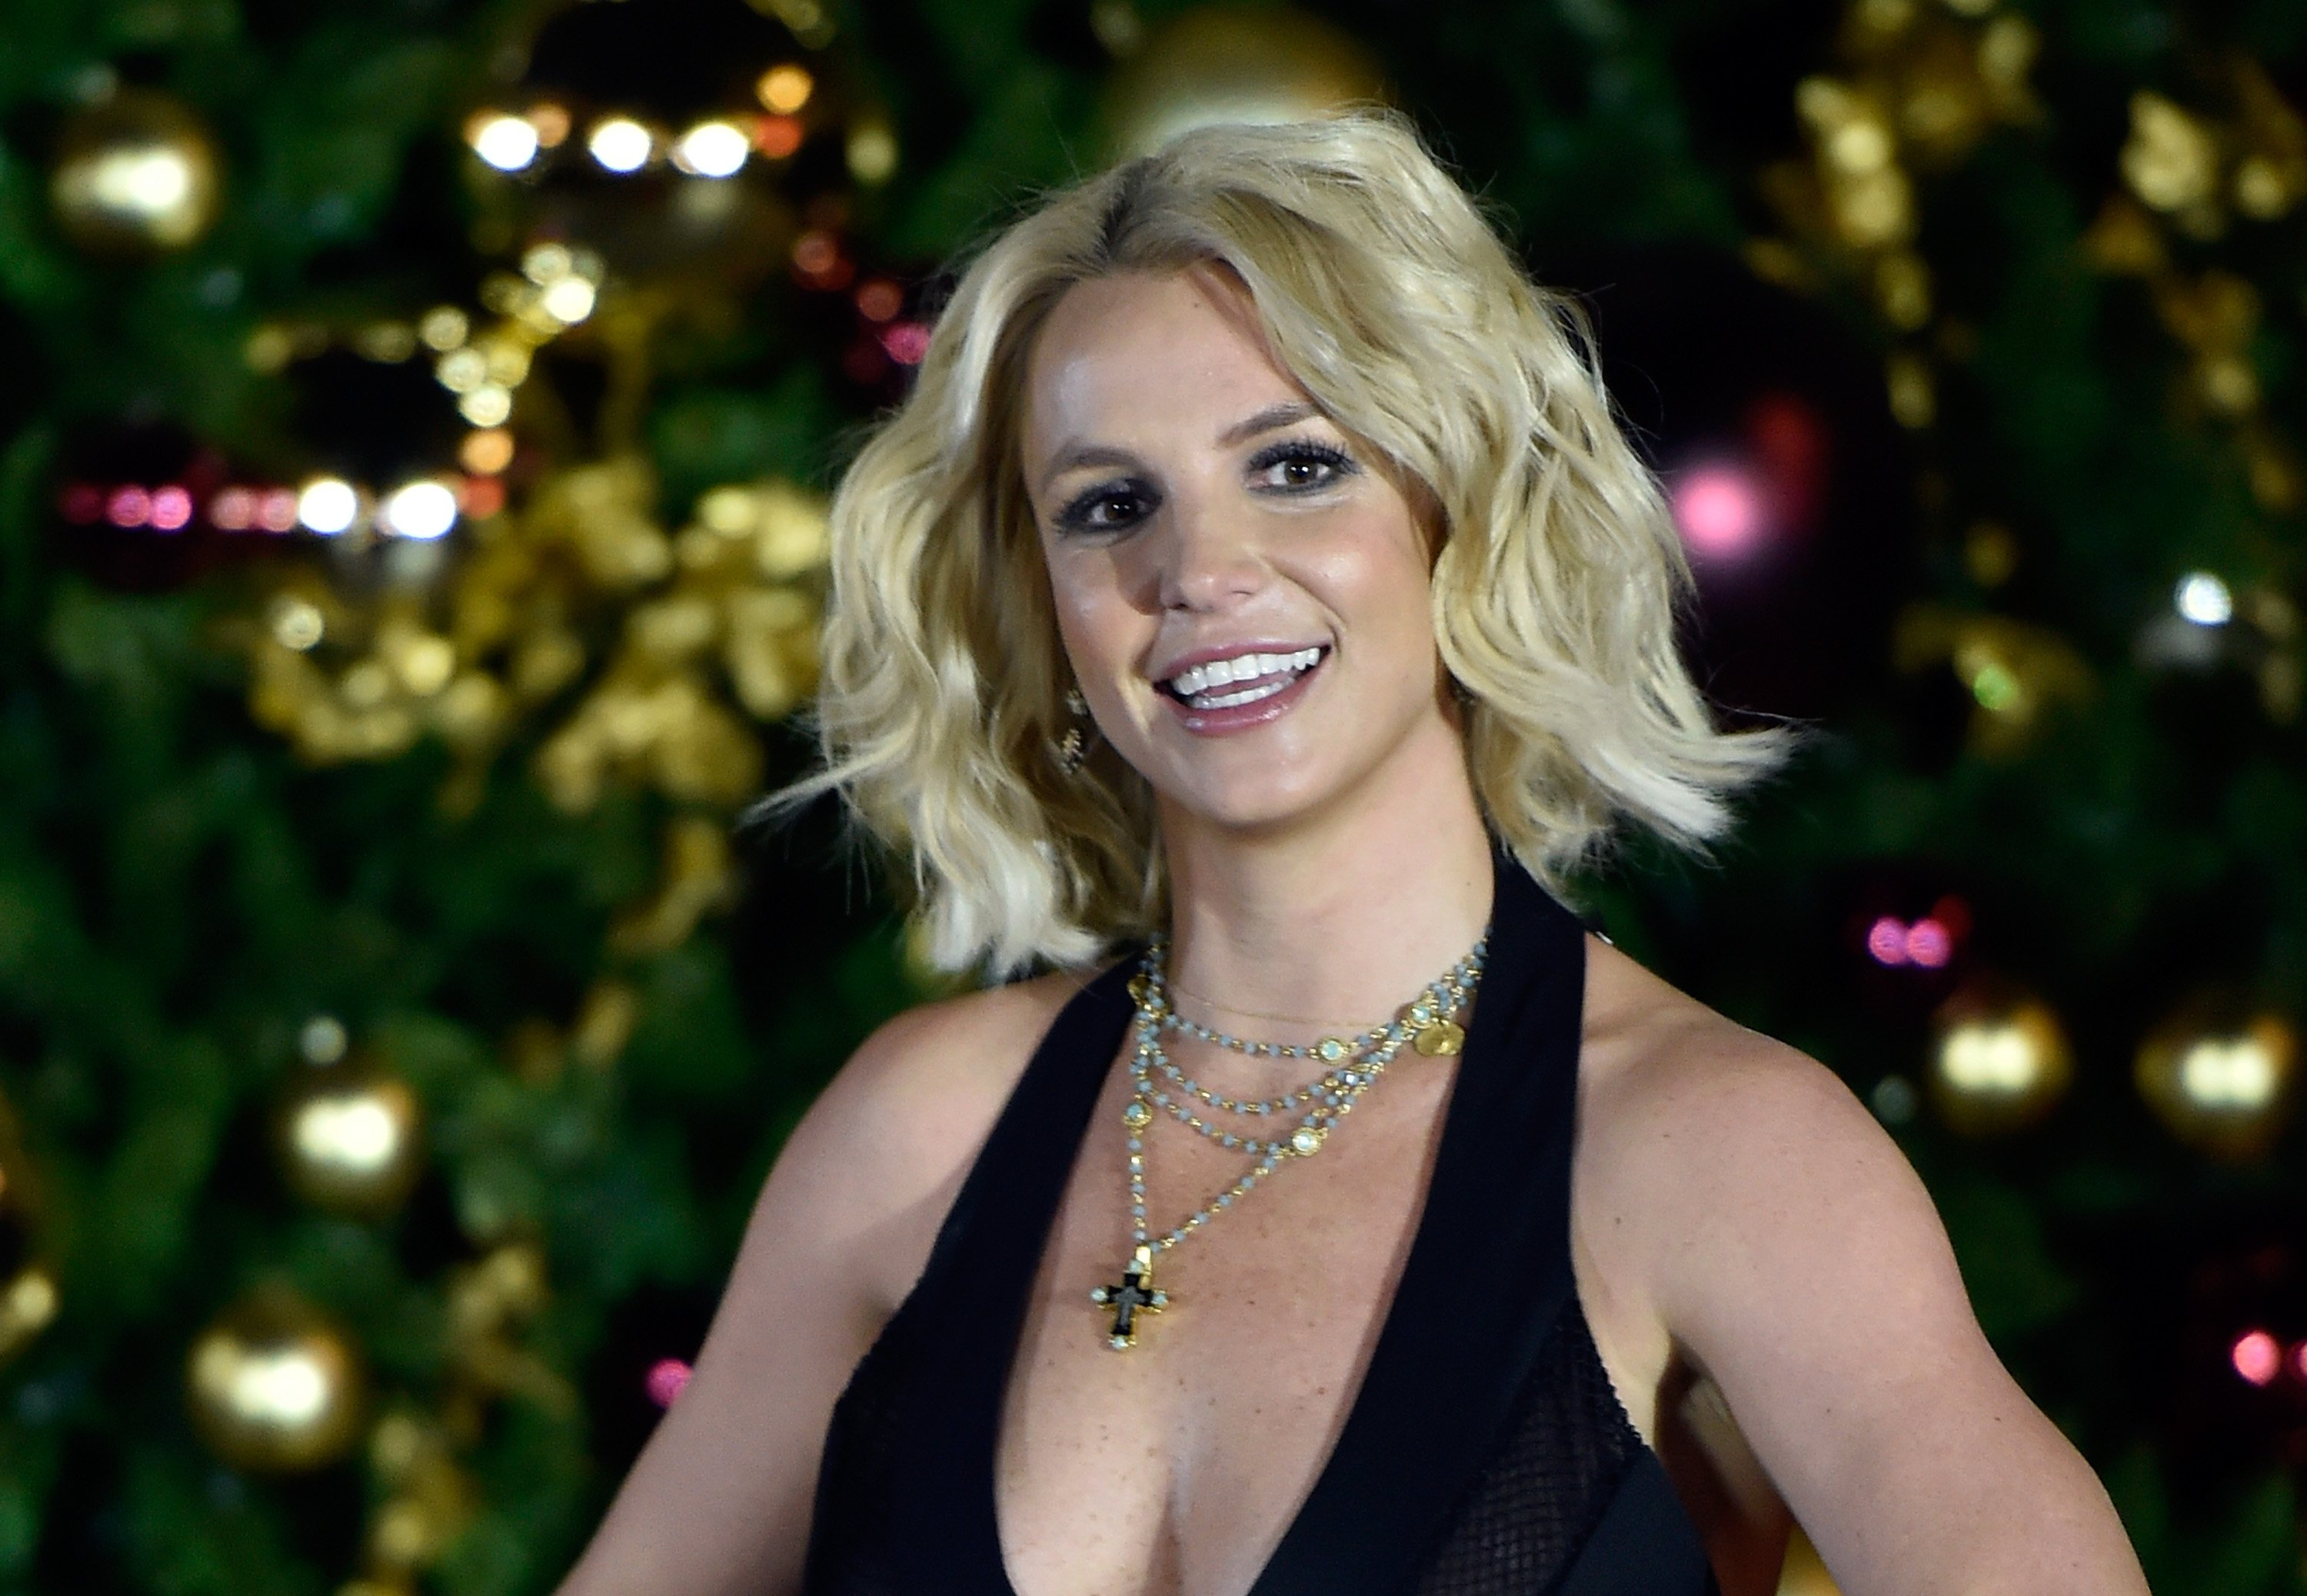 Britney Spears arrives at a Christmas tree-lighting ceremony on November 21, 2015, in Las Vegas, Nevada. | Source: Getty Images.